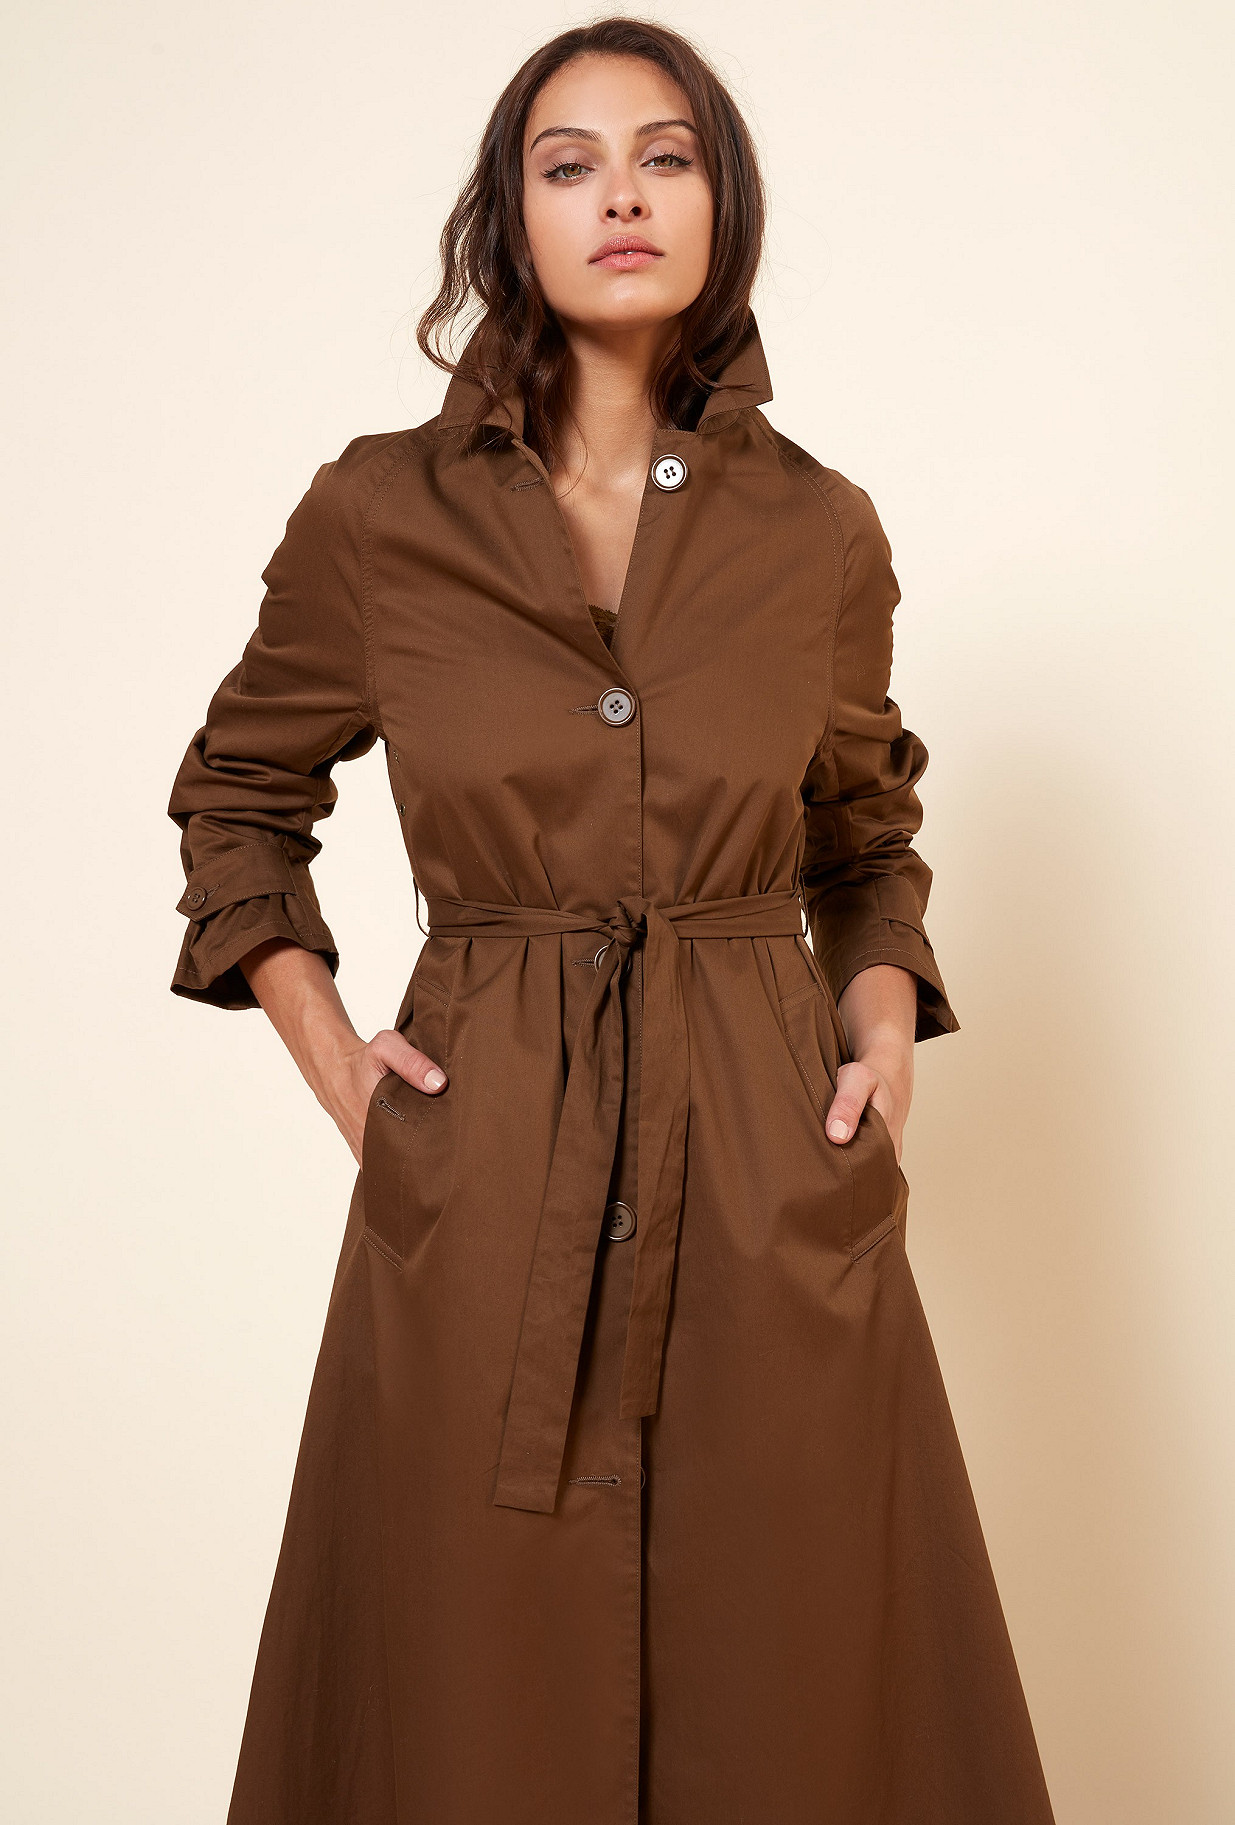 Khaki  COAT  Grant Mes demoiselles fashion clothes designer Paris